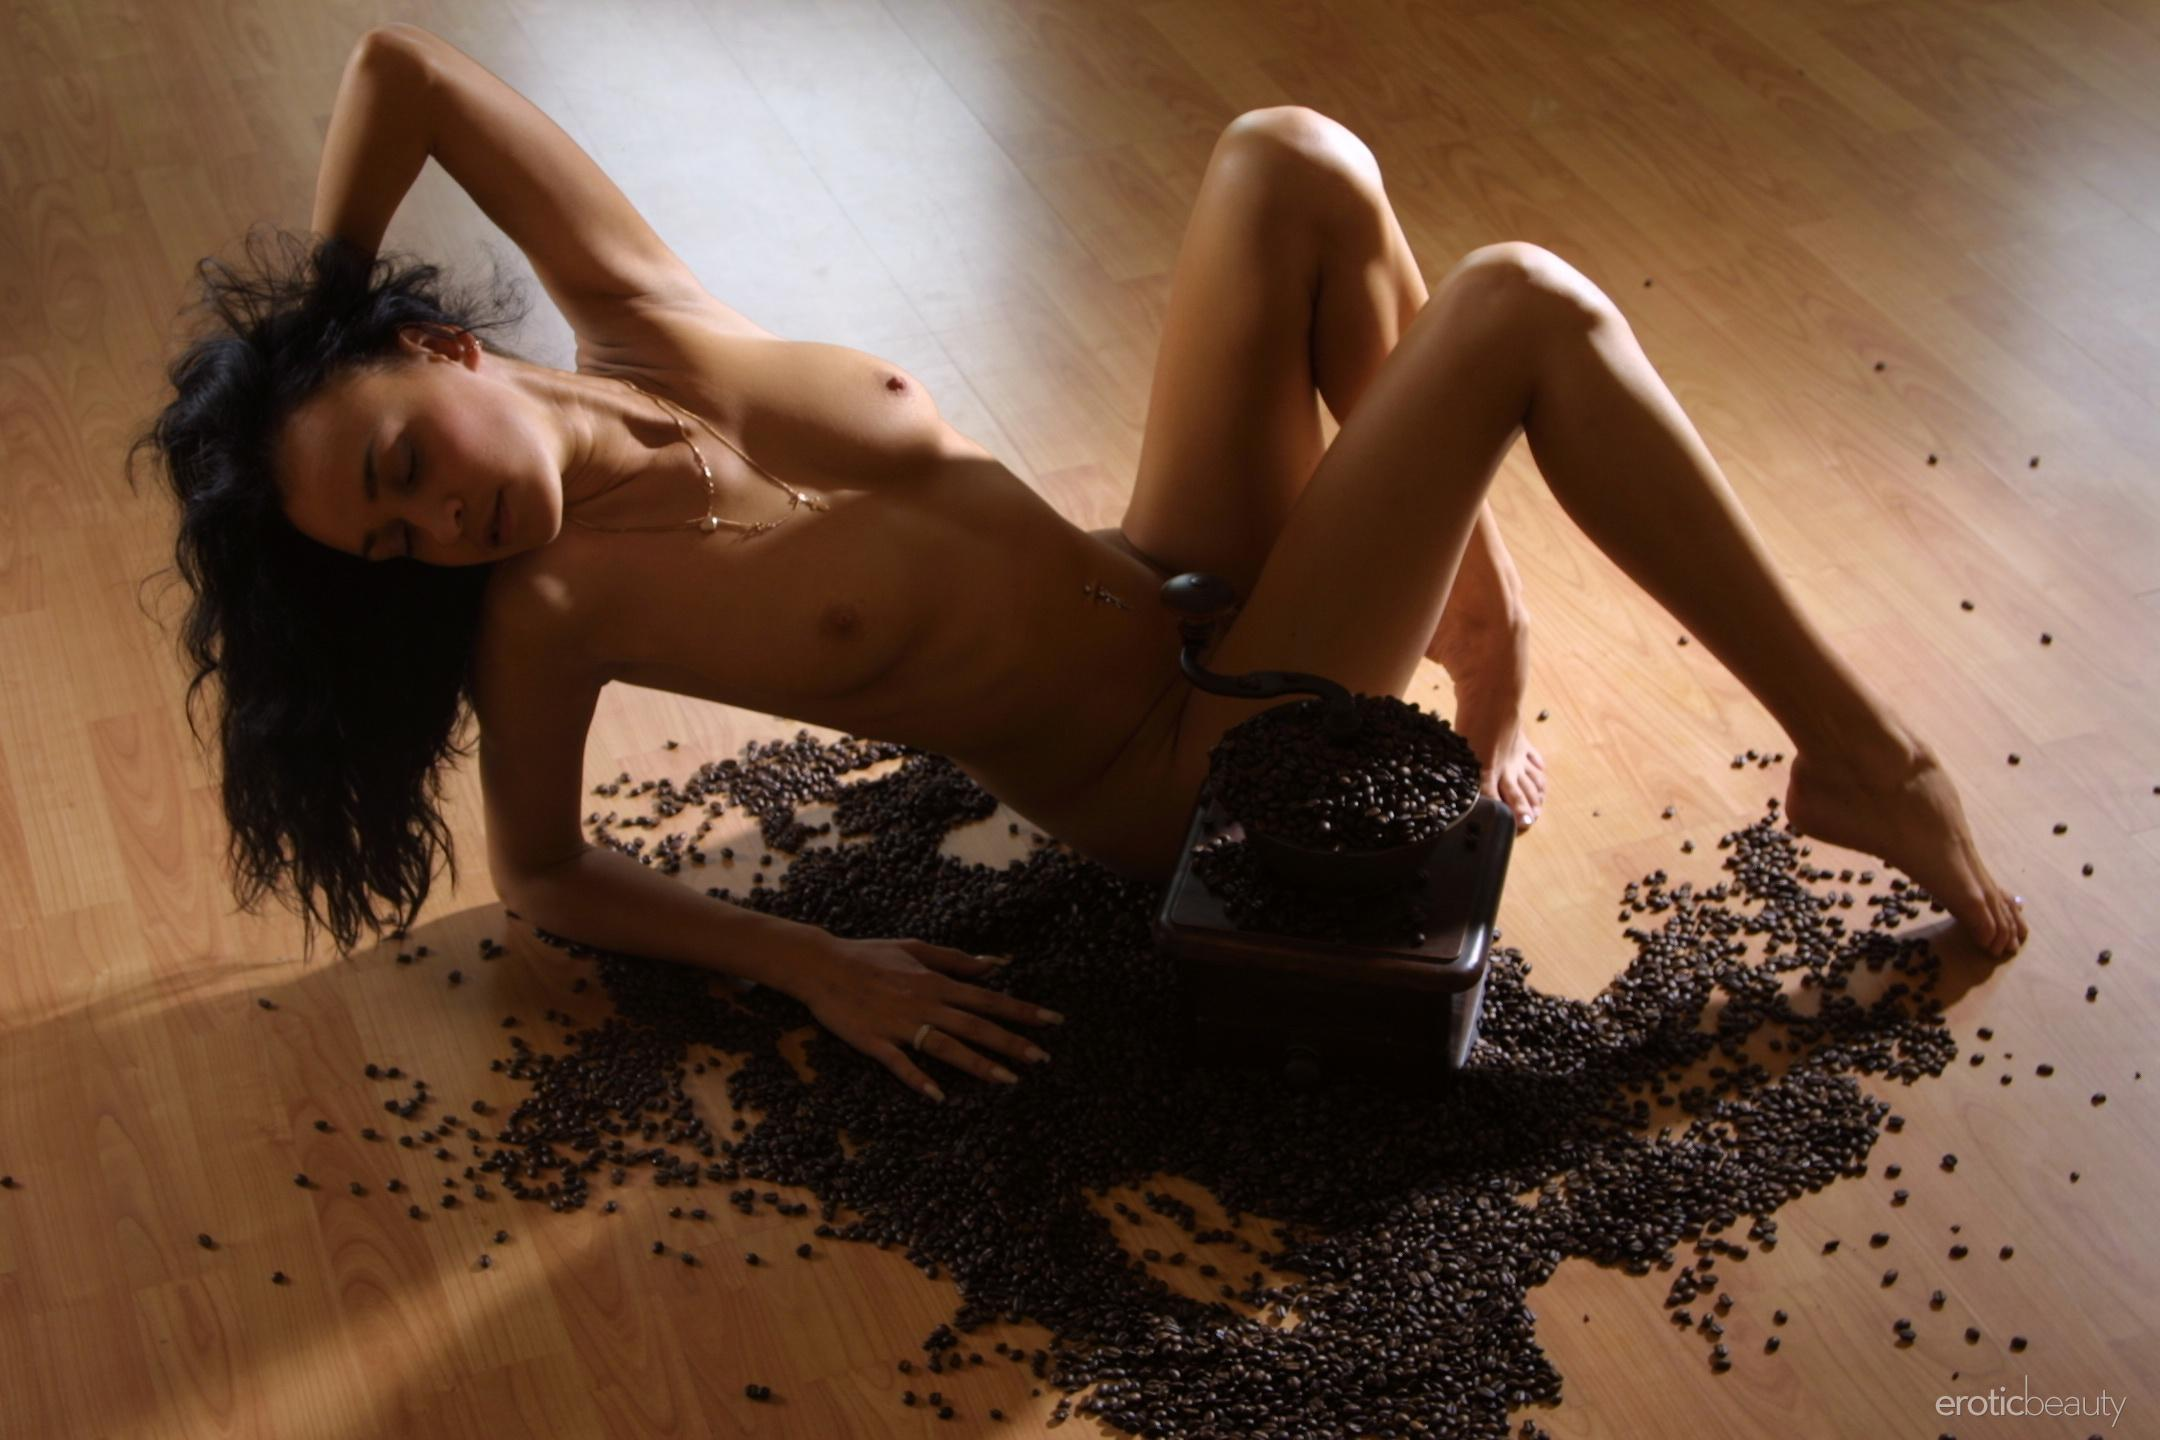 Multiple cumshots, she swallows